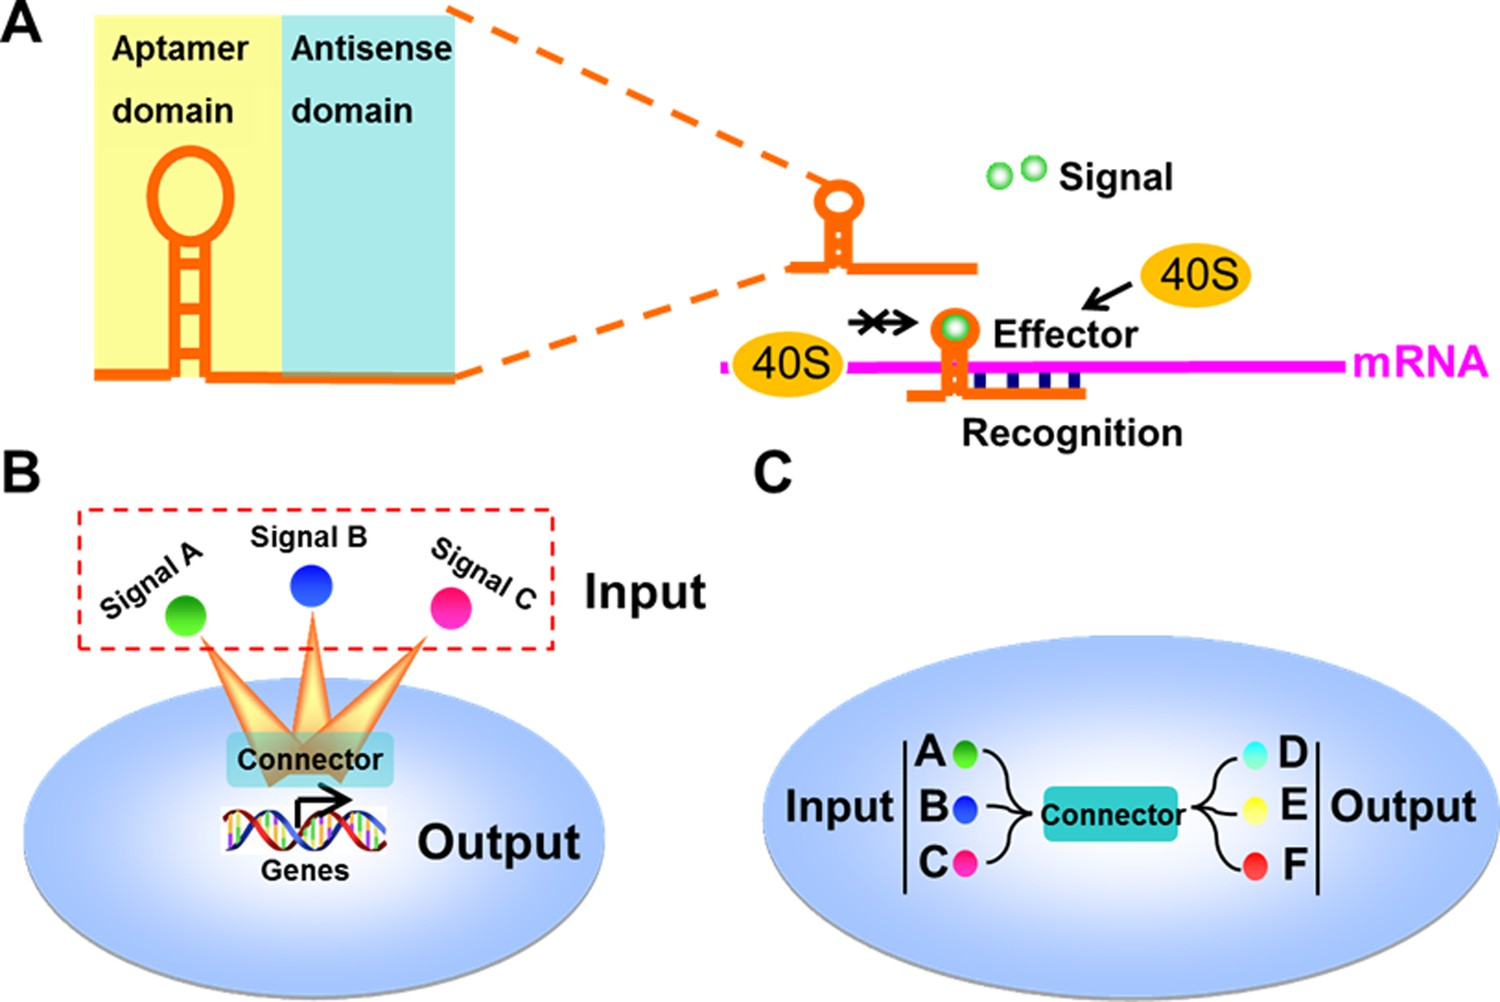 Synthesizing Artificial Devices That Redirect Cellular Information Basis Of Different Regulator Types Principles Genetic Circuit Design And Construction The Signal Connectors For Constructing Linkages Between Signaling Nodes